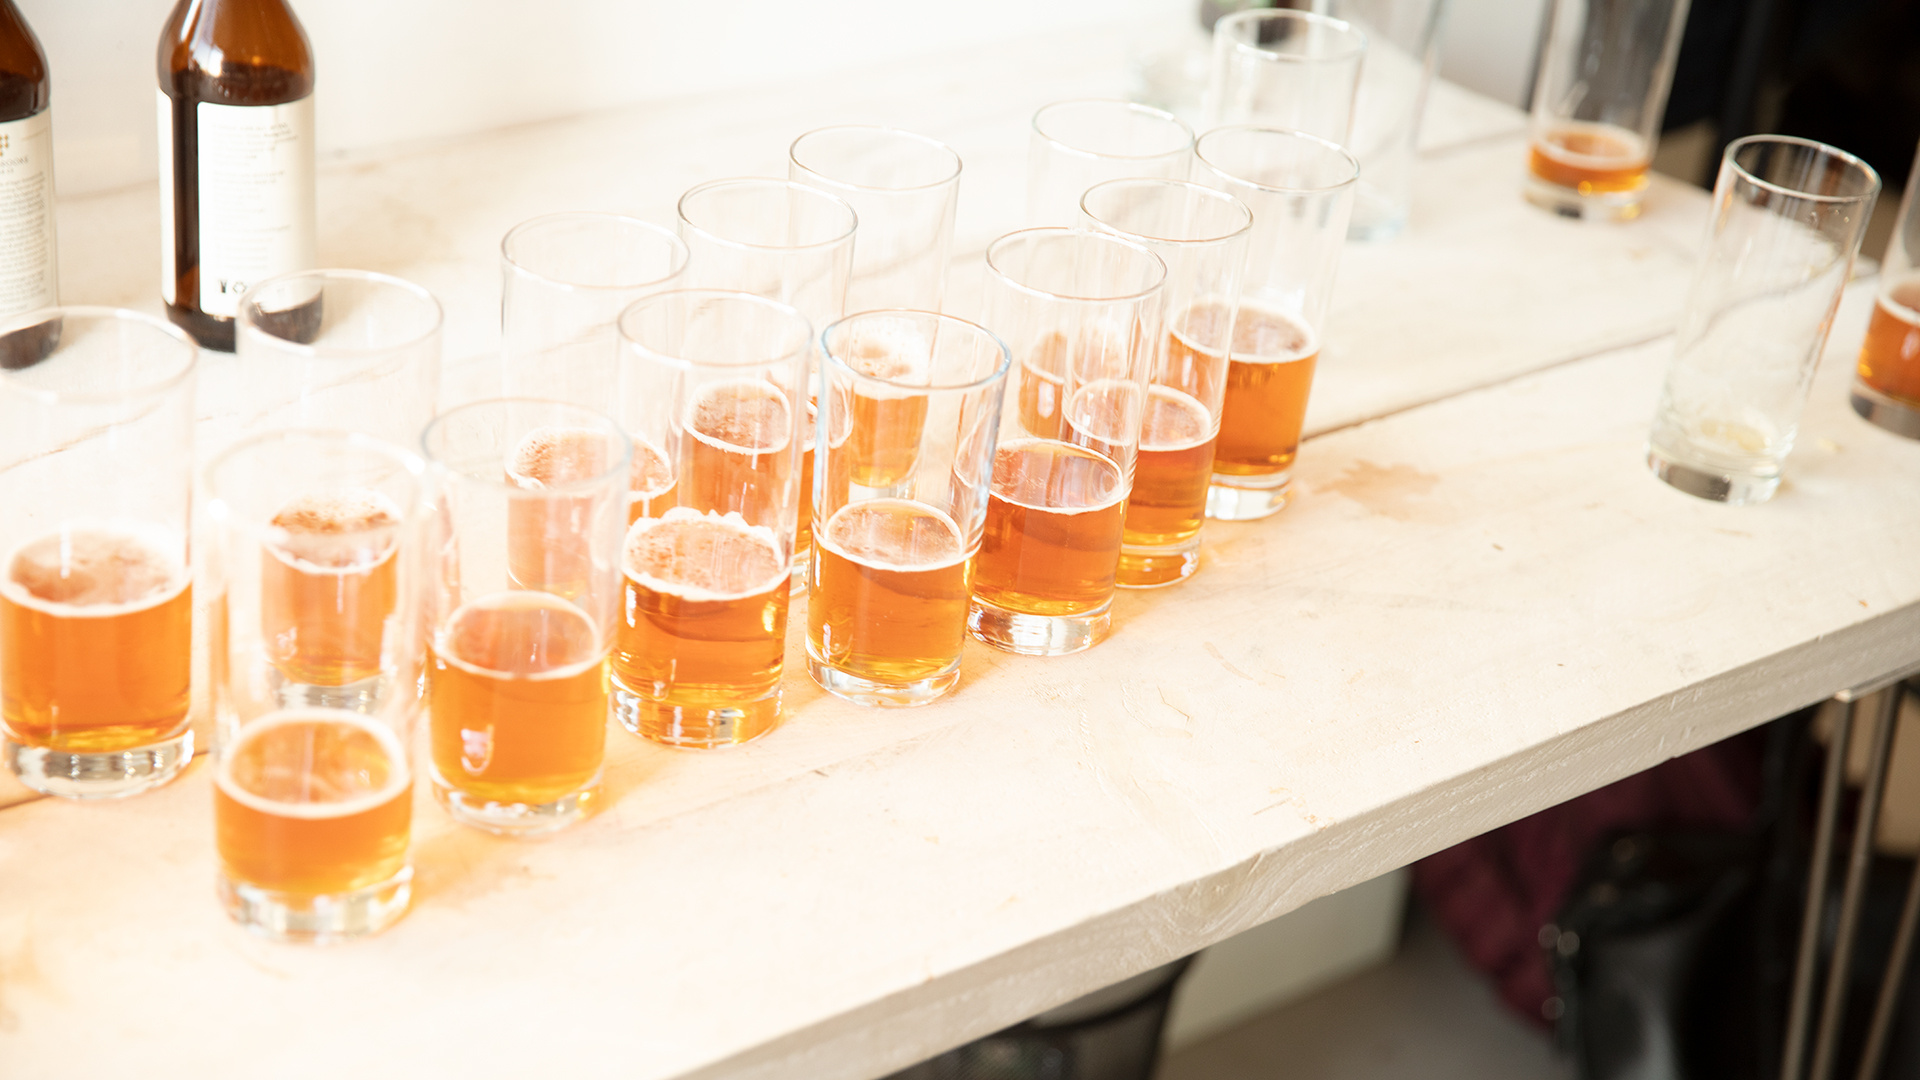 Food and Beer pairing: Foodism x George's Kitchen